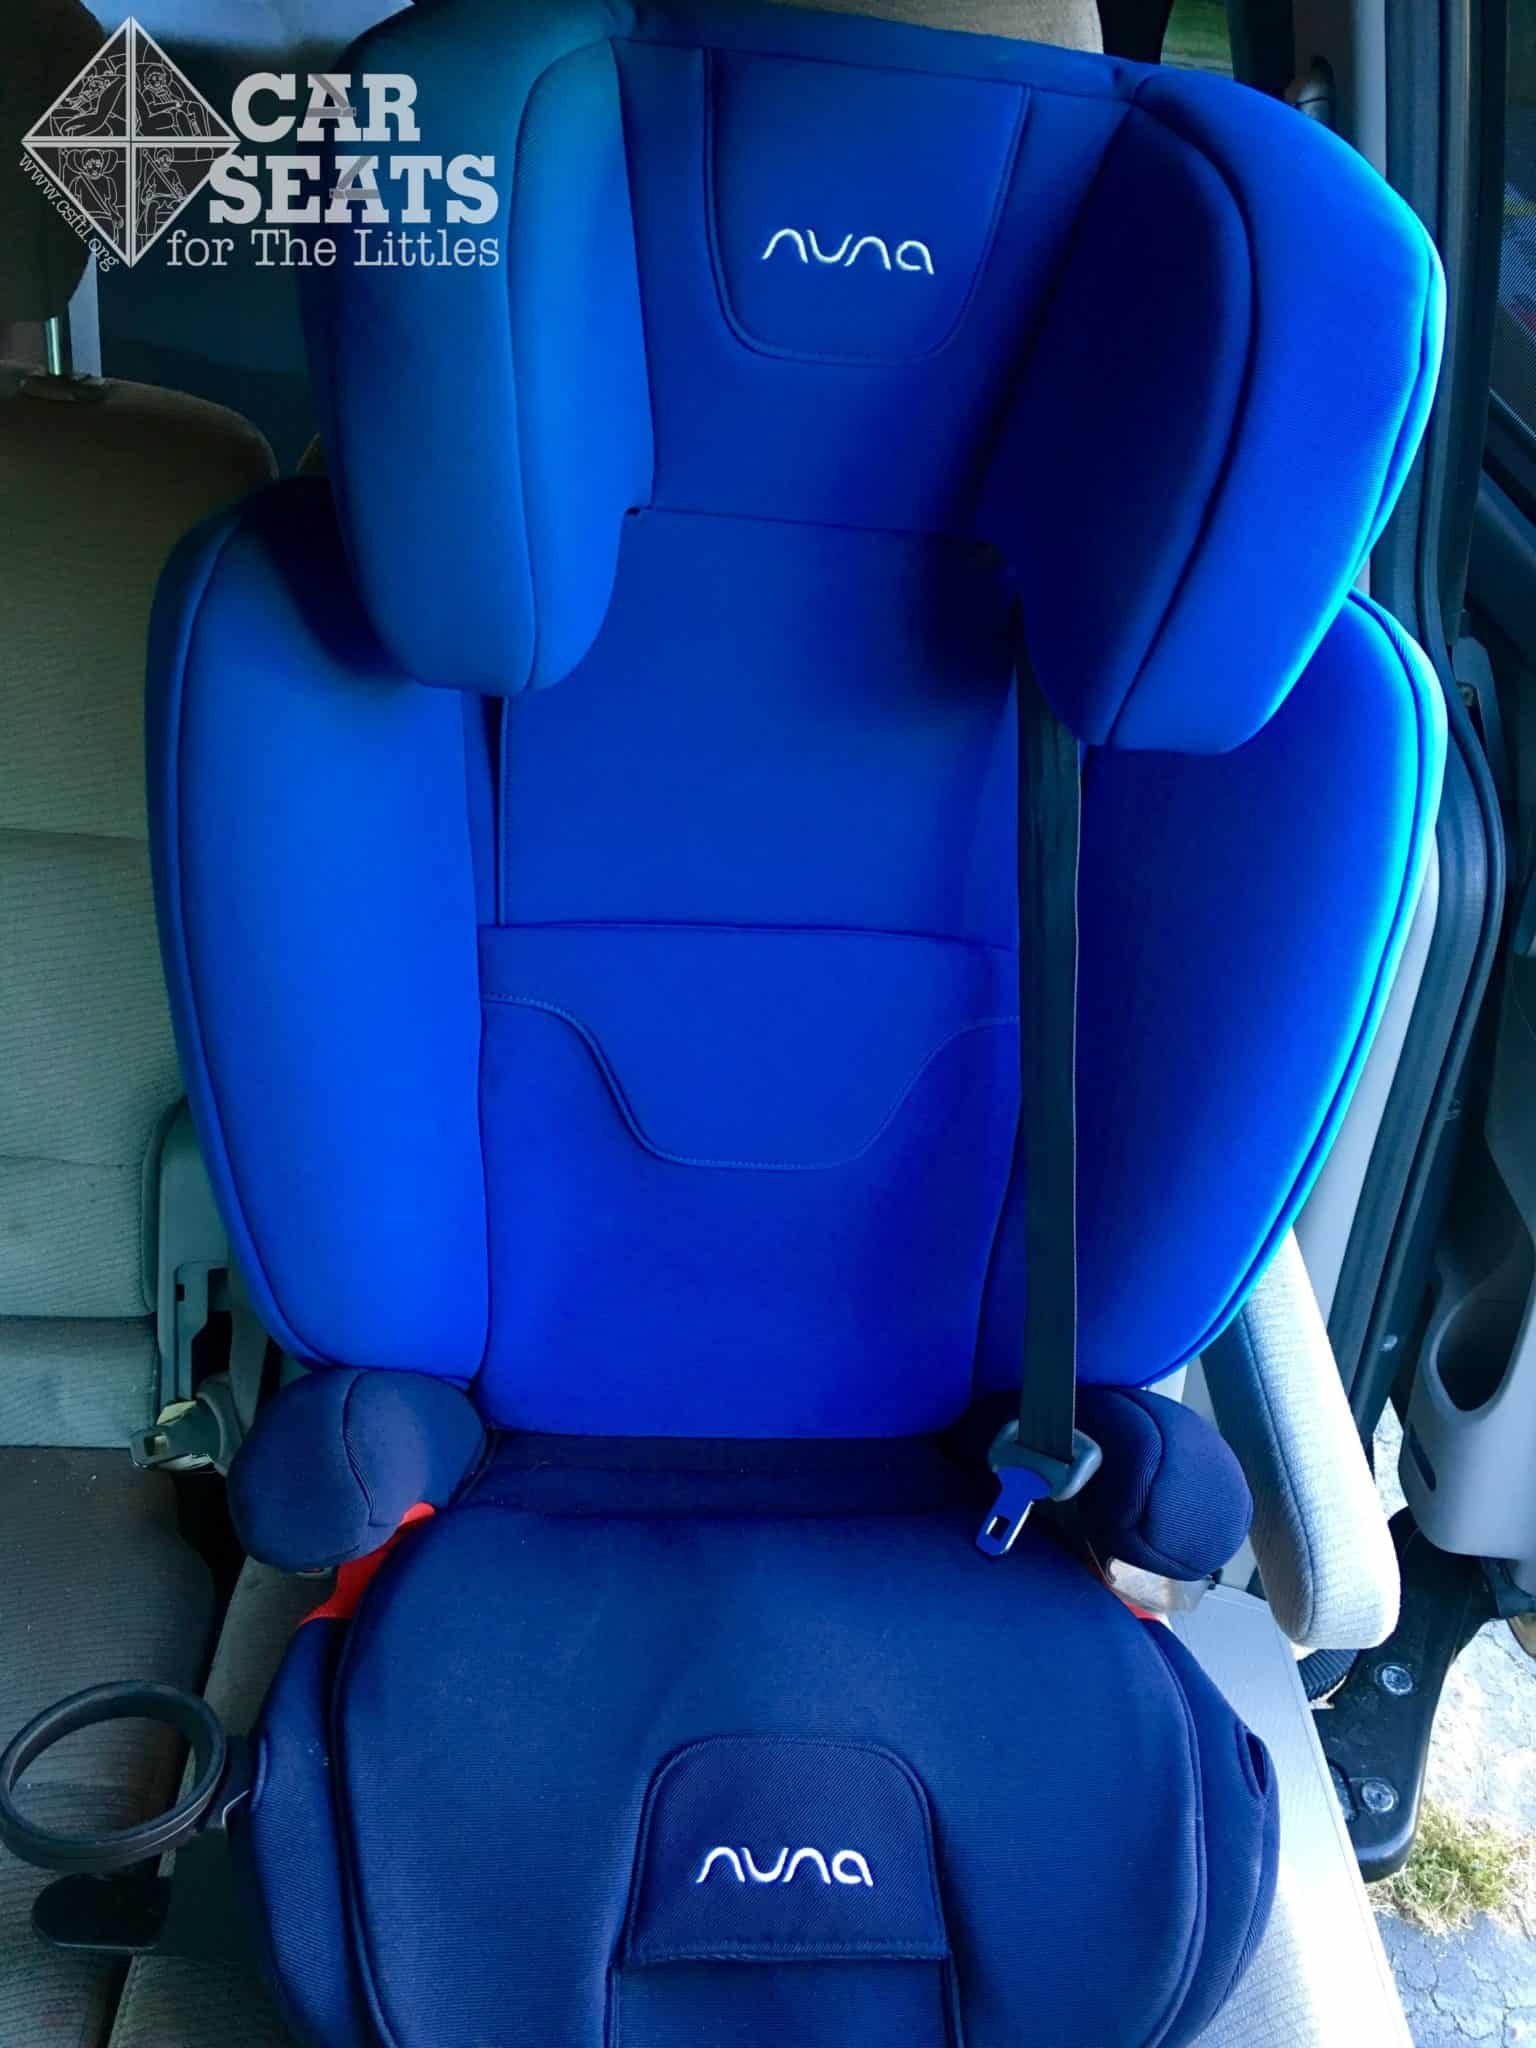 High Back Booster Car Seat >> Nuna AACE Review - Car Seats For The Littles